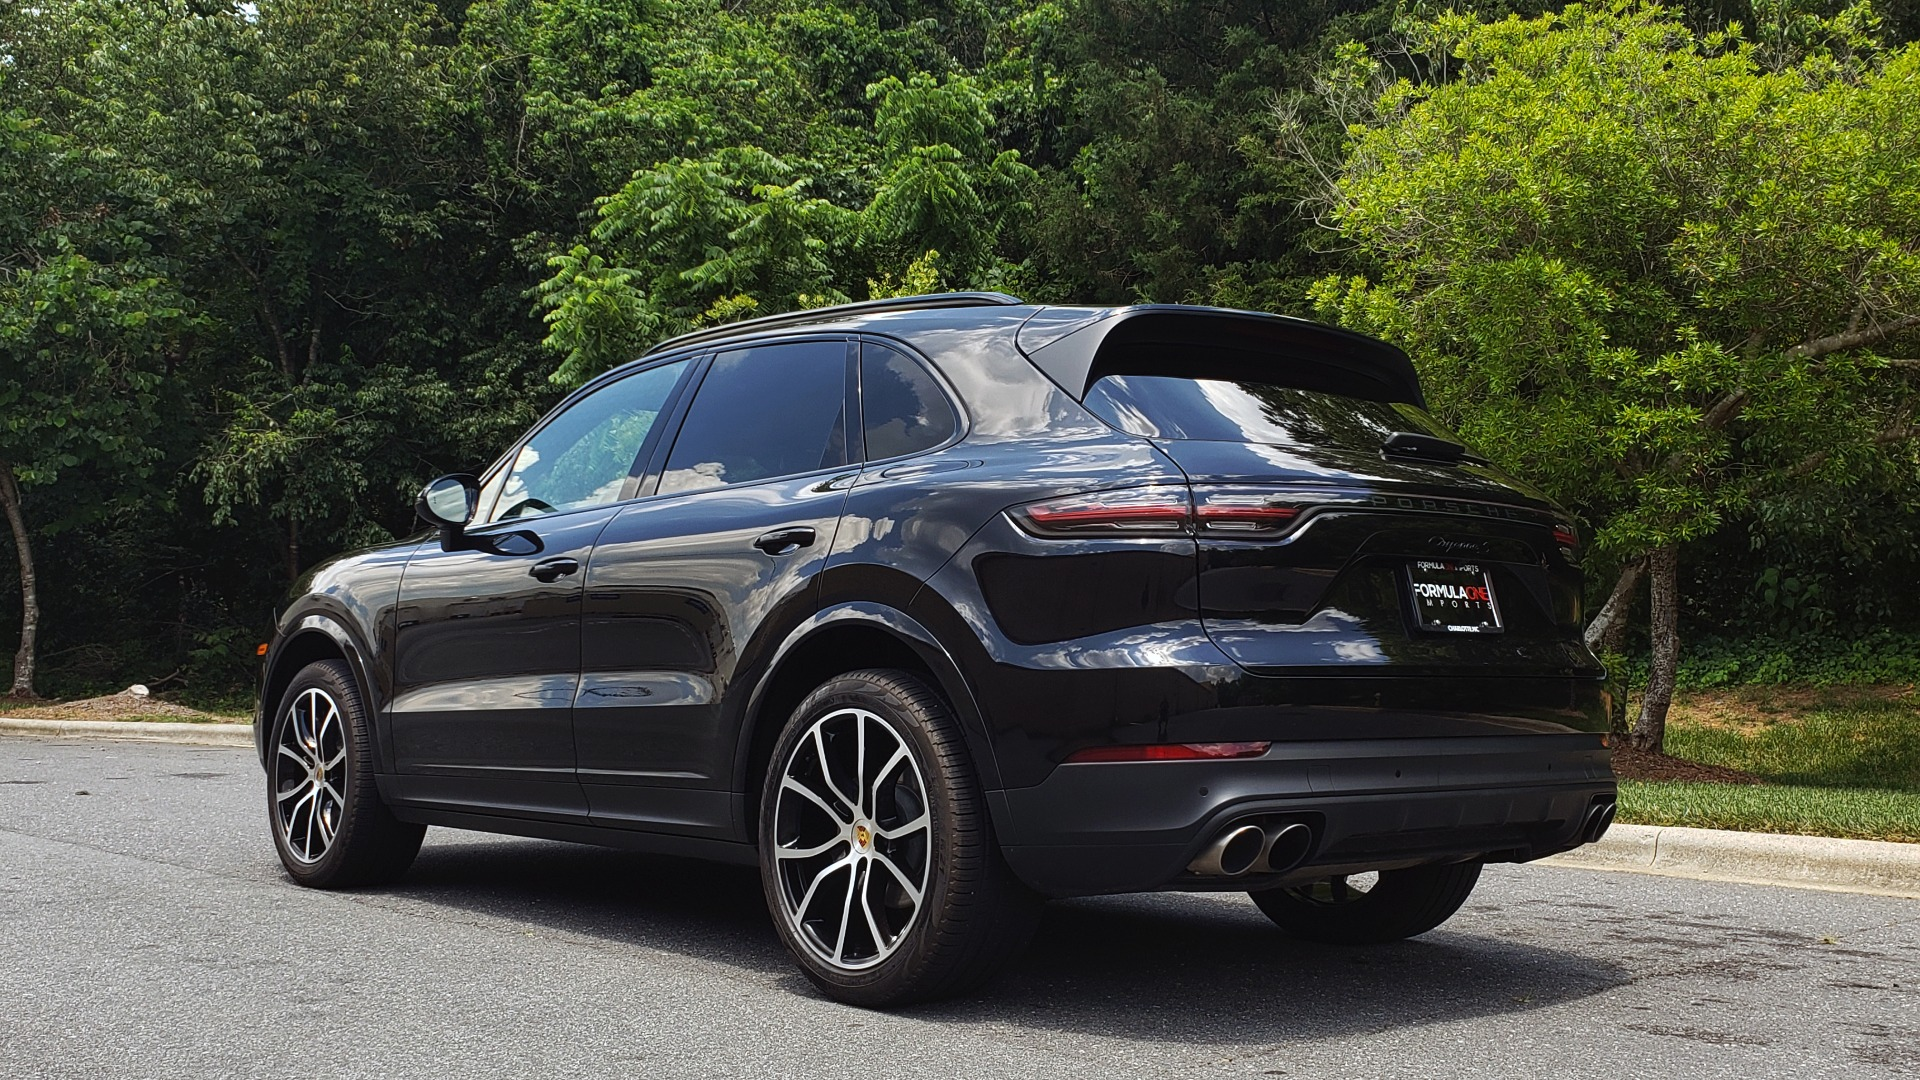 Used 2019 Porsche CAYENNE S AWD / NAV / SUNROOF / BOSE / REARVIEW / LOW MILES for sale Sold at Formula Imports in Charlotte NC 28227 3